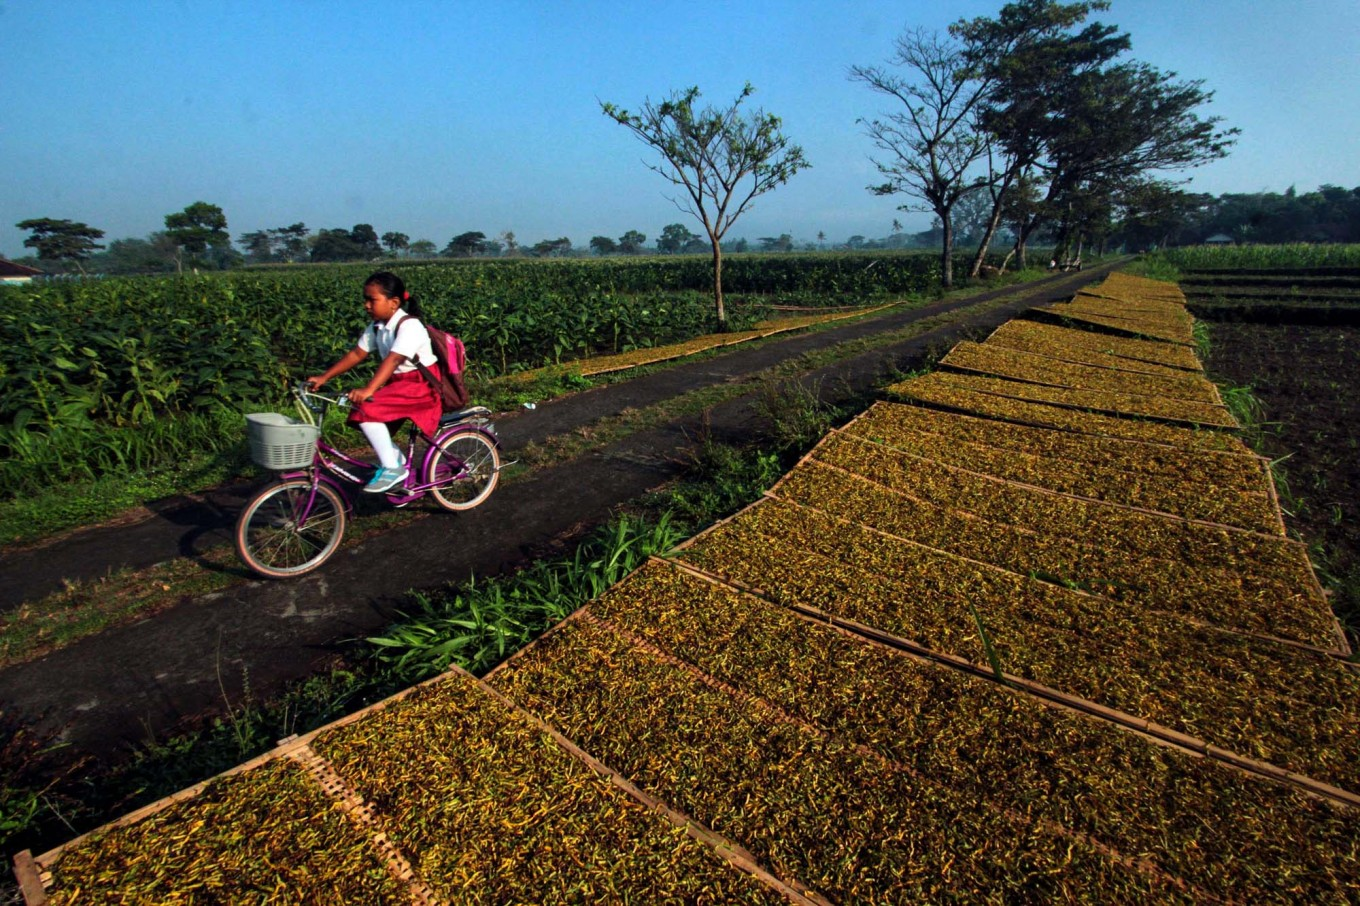 An elementary school student rides her bike, passing neatly arranged sliced tobacco on bamboo trays that are dried by the sun at the side of the road. JP/Aditya Sagita